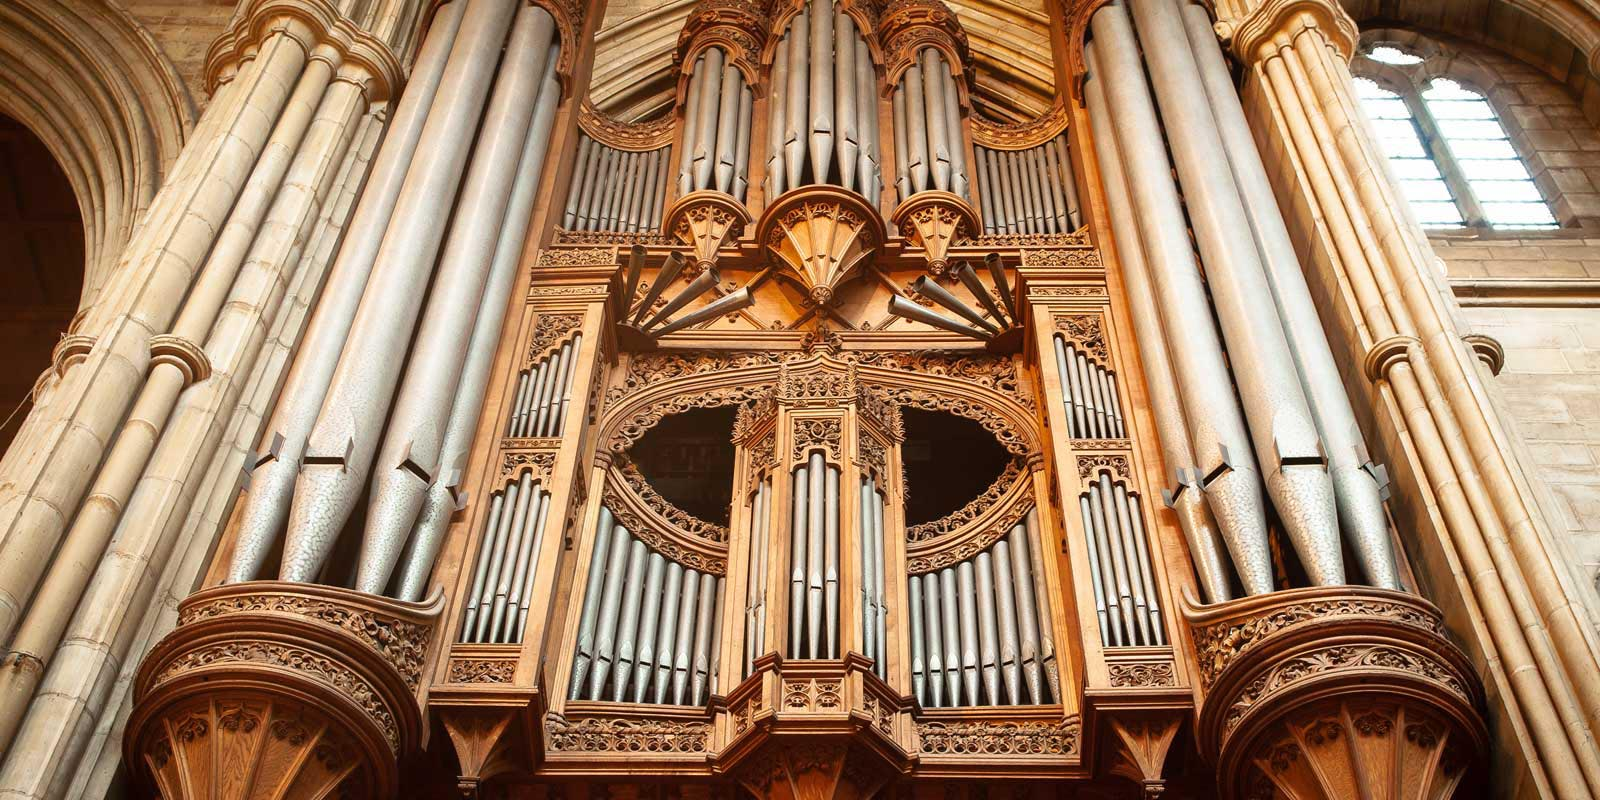 The Hill pipe organ at All Saints Hove